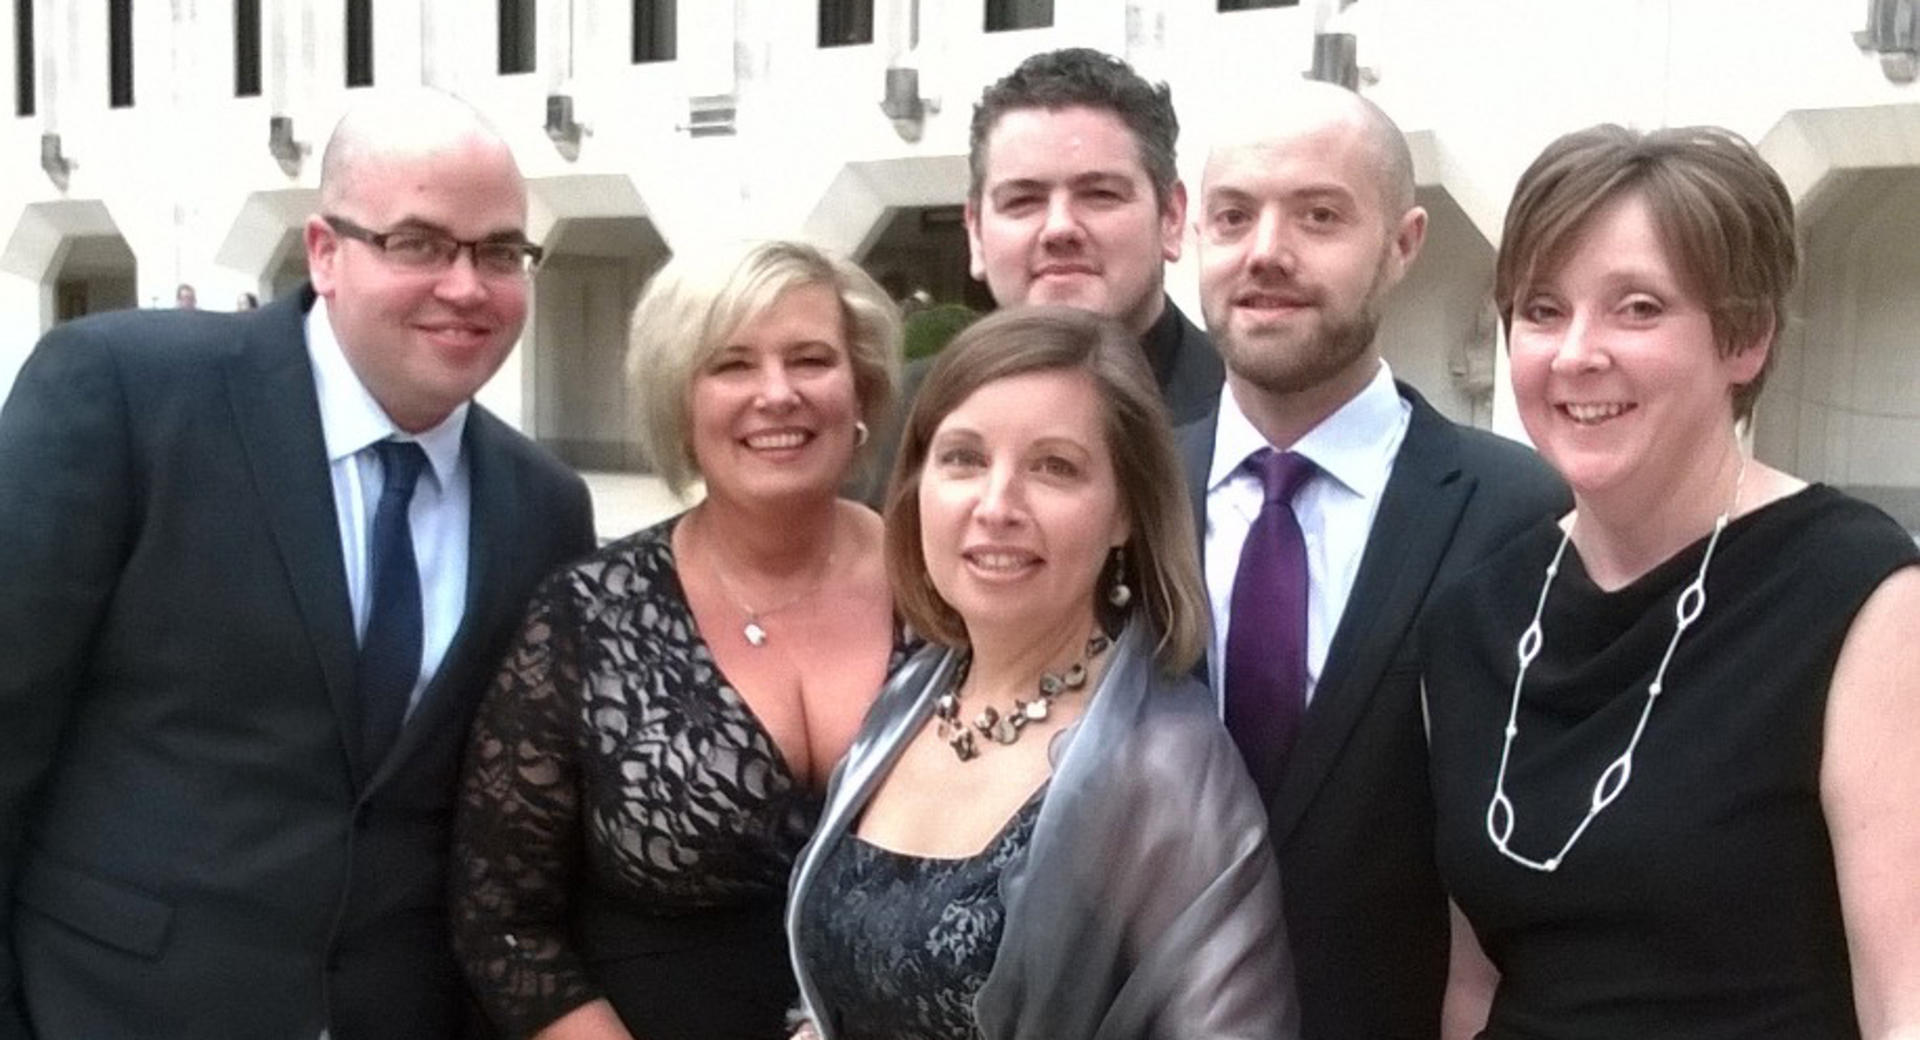 Catering lecturers proud to attend teaching awards finale